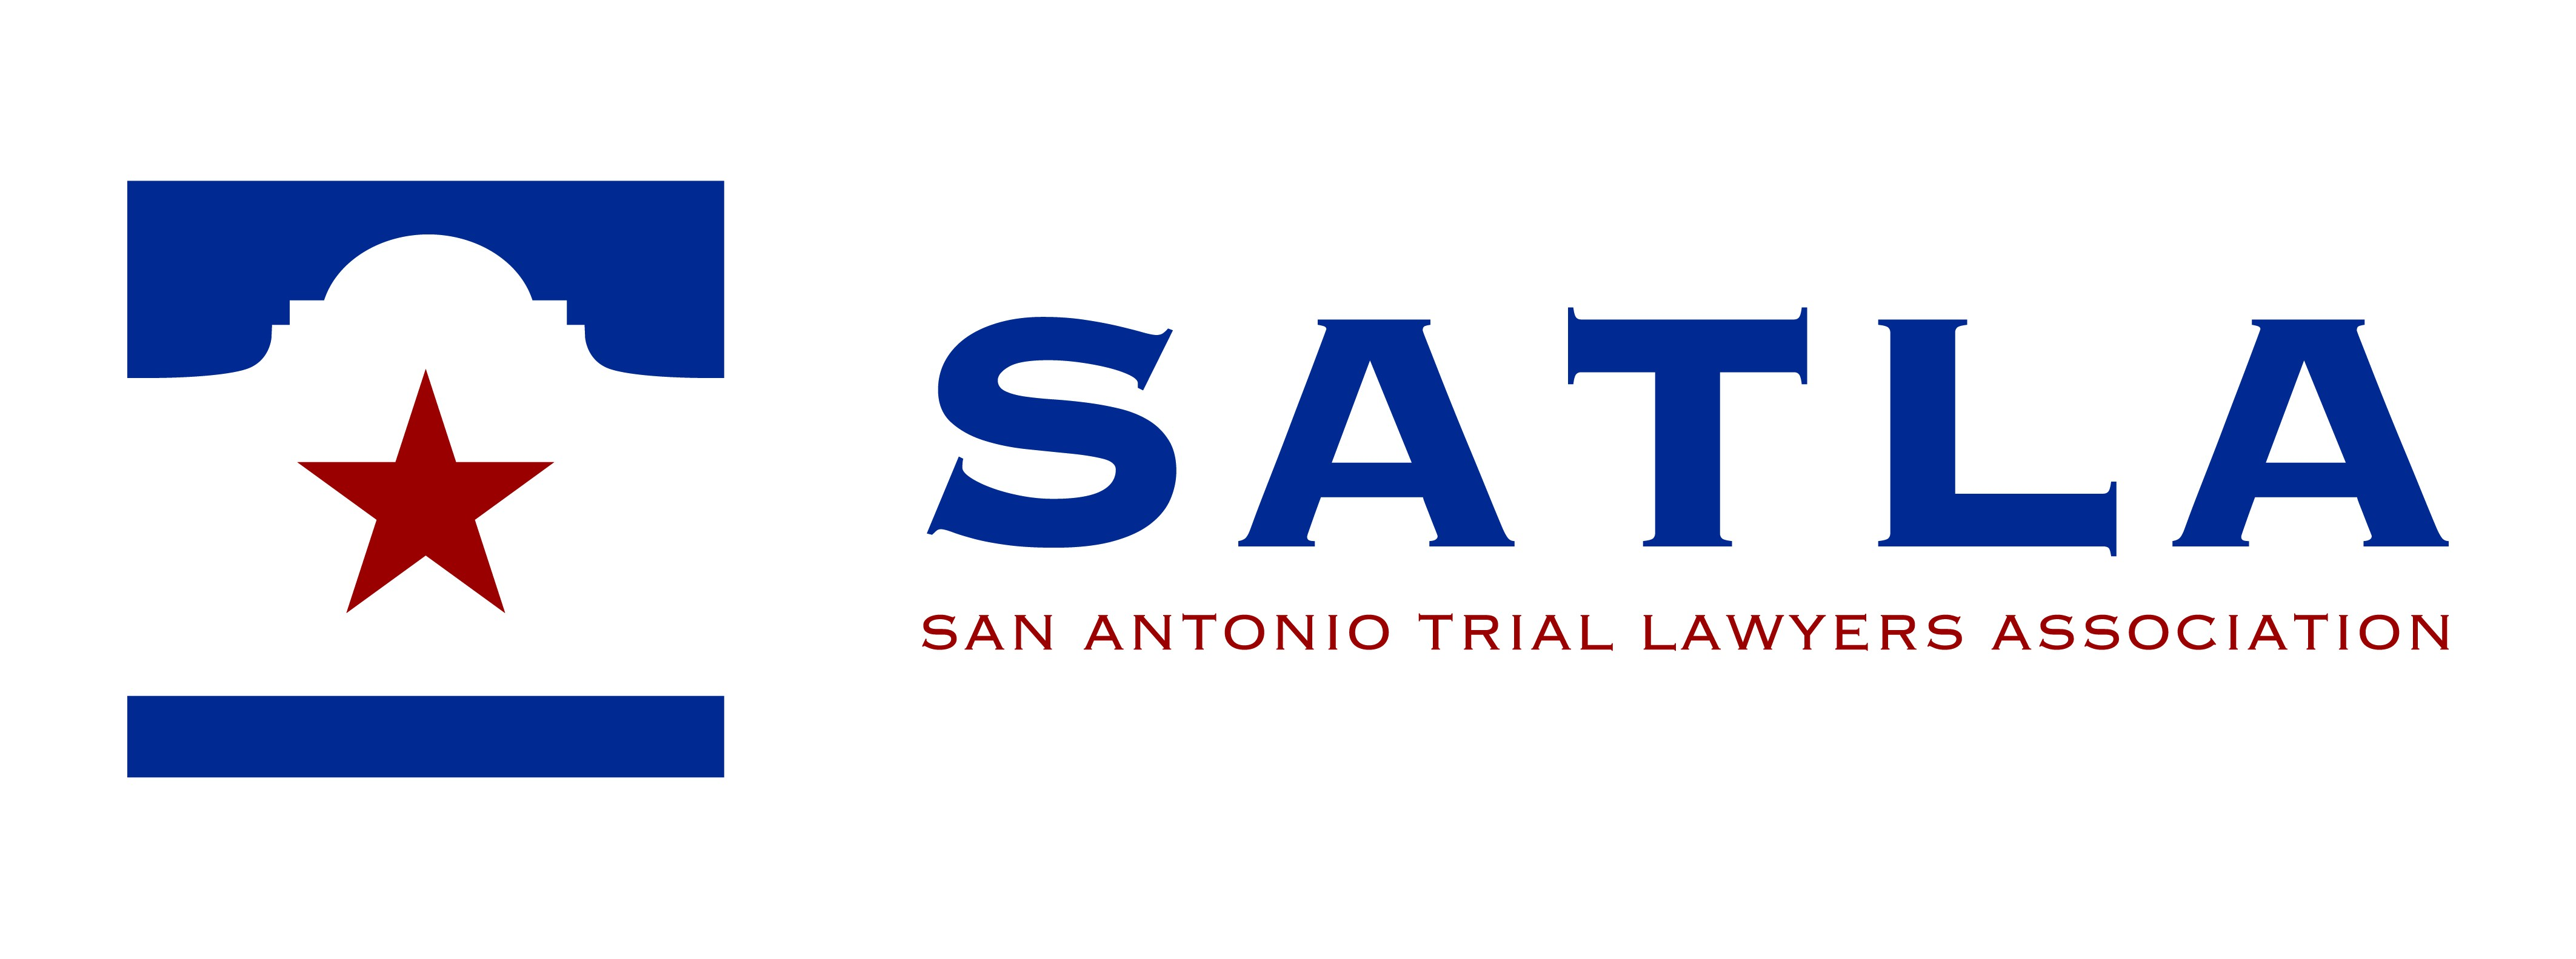 Create a modern logo for a trial lawyers association located in San Antonio, Texas